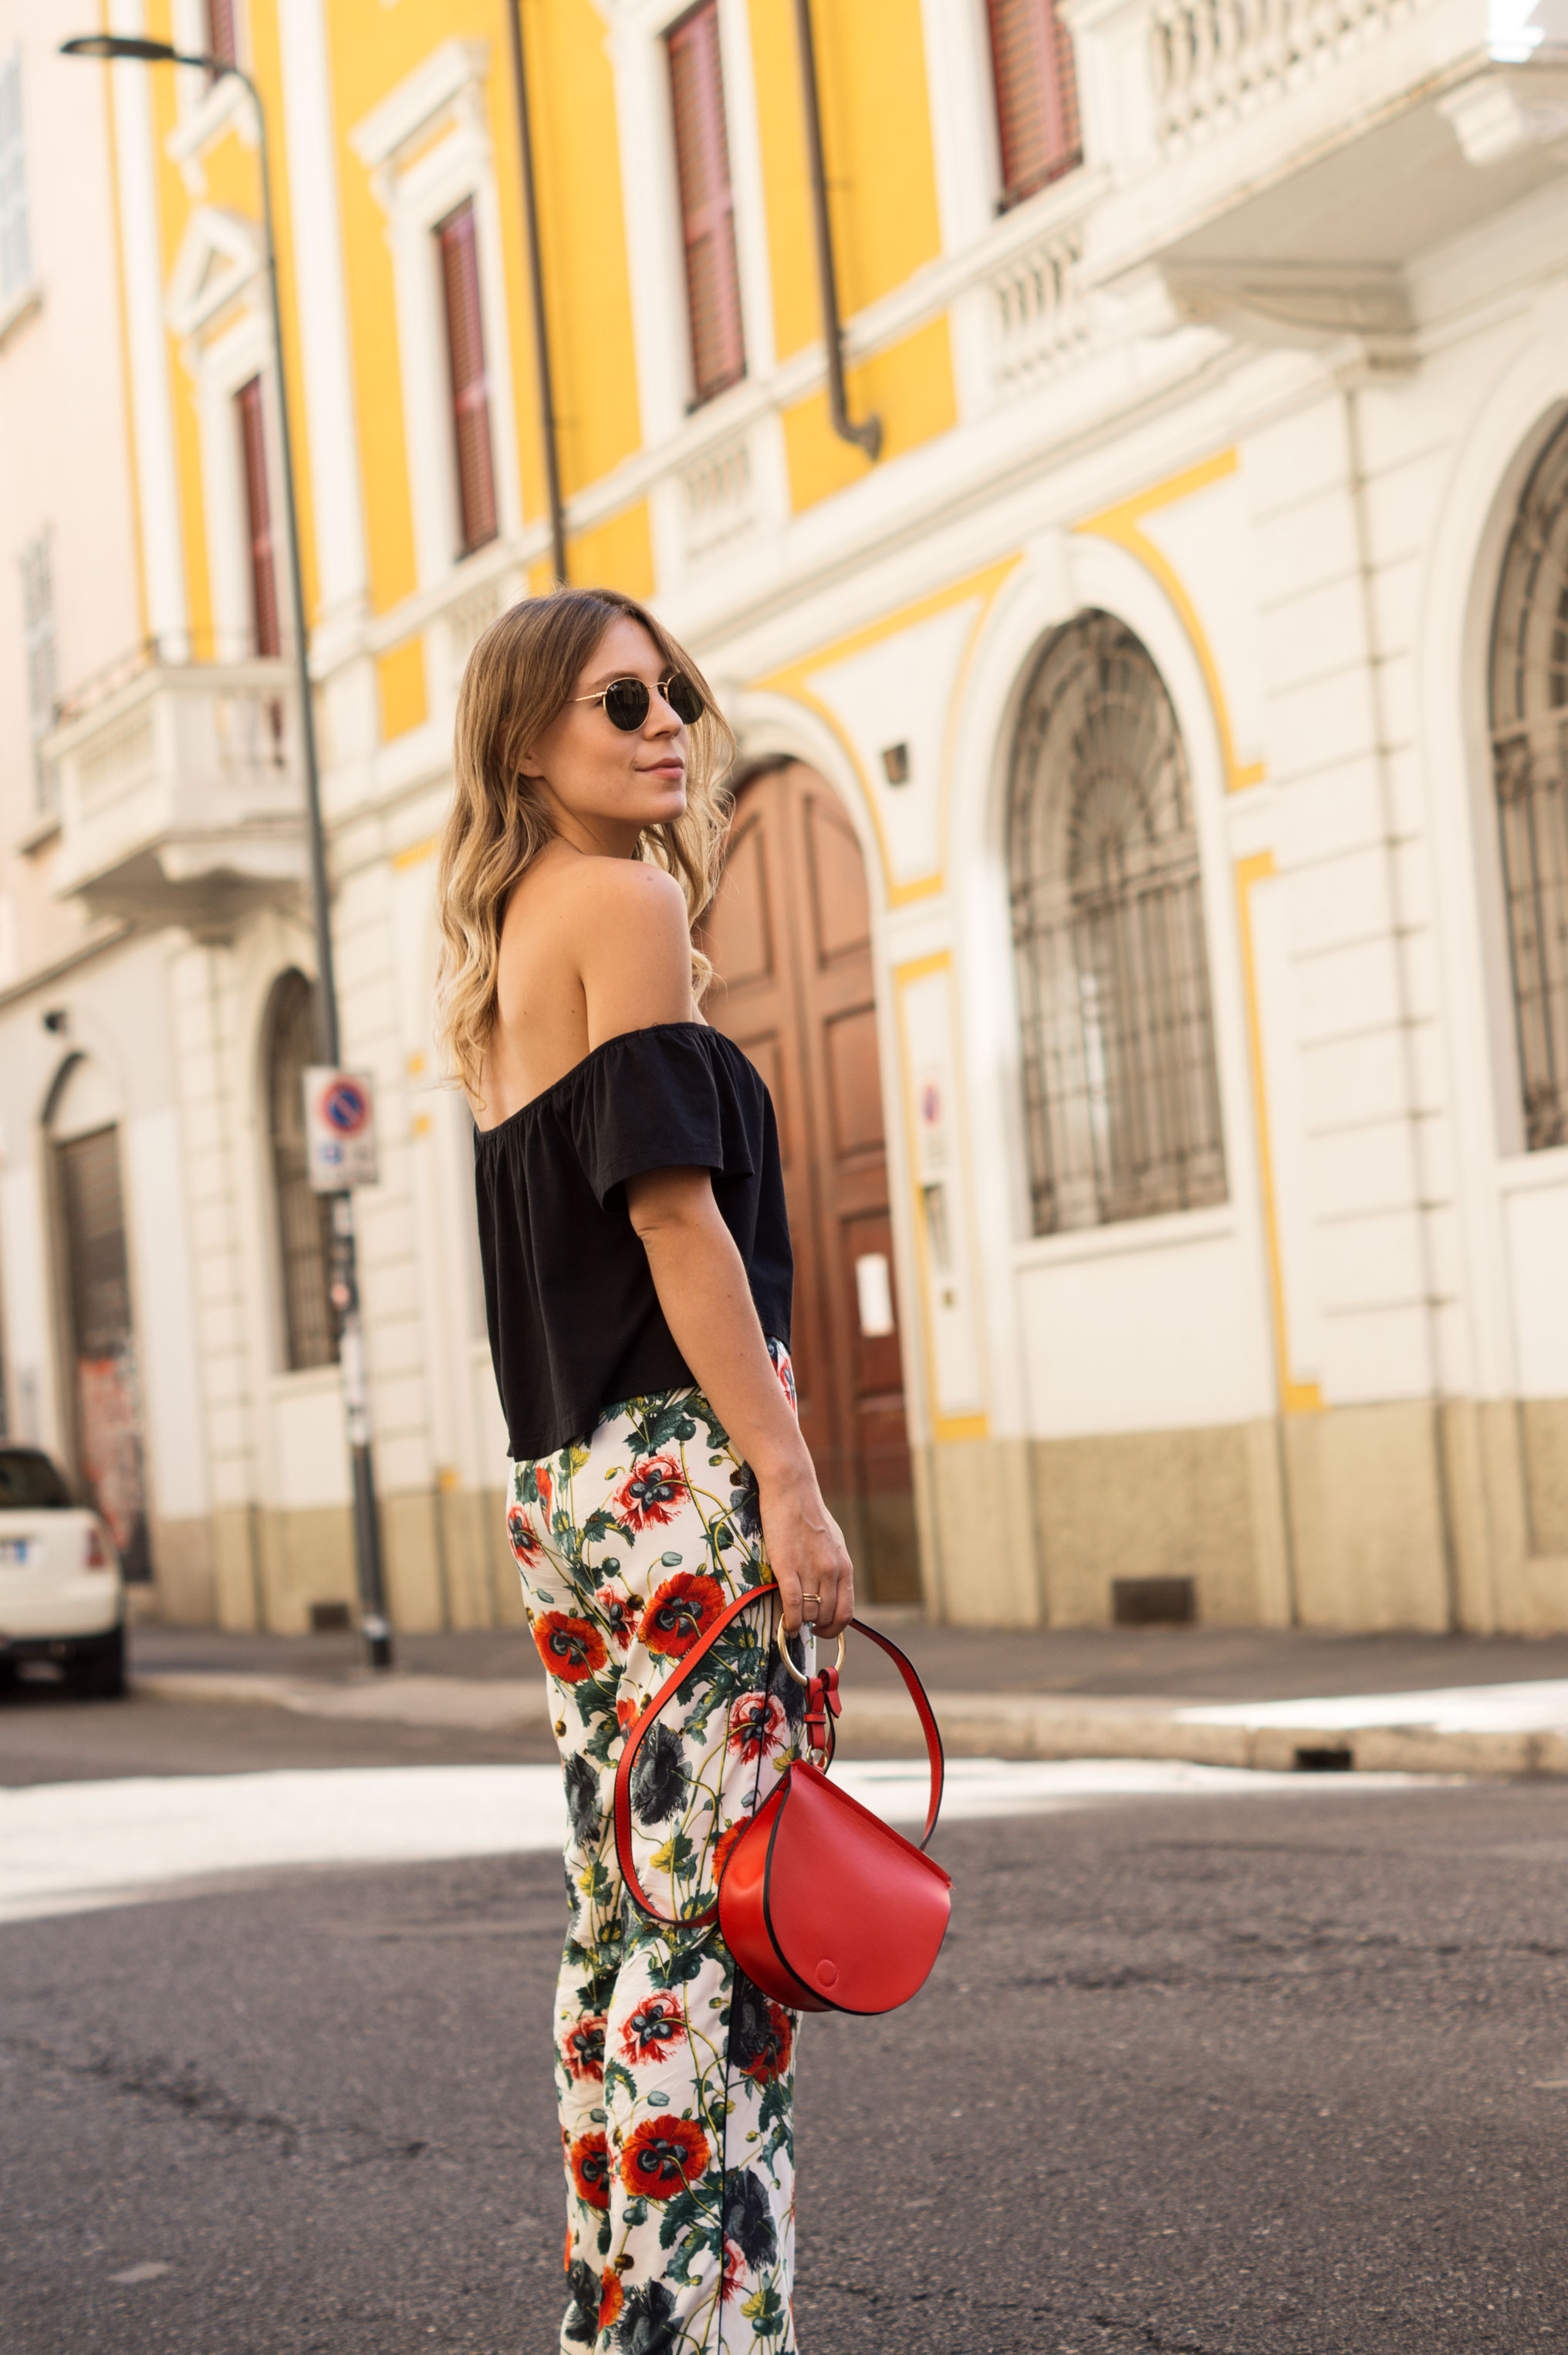 H&M Printhose Milan Sariety Fashionblogger Sommerlook Mailand rote Tasche Chanel Schuhe Dupes Summer Floral Print-4